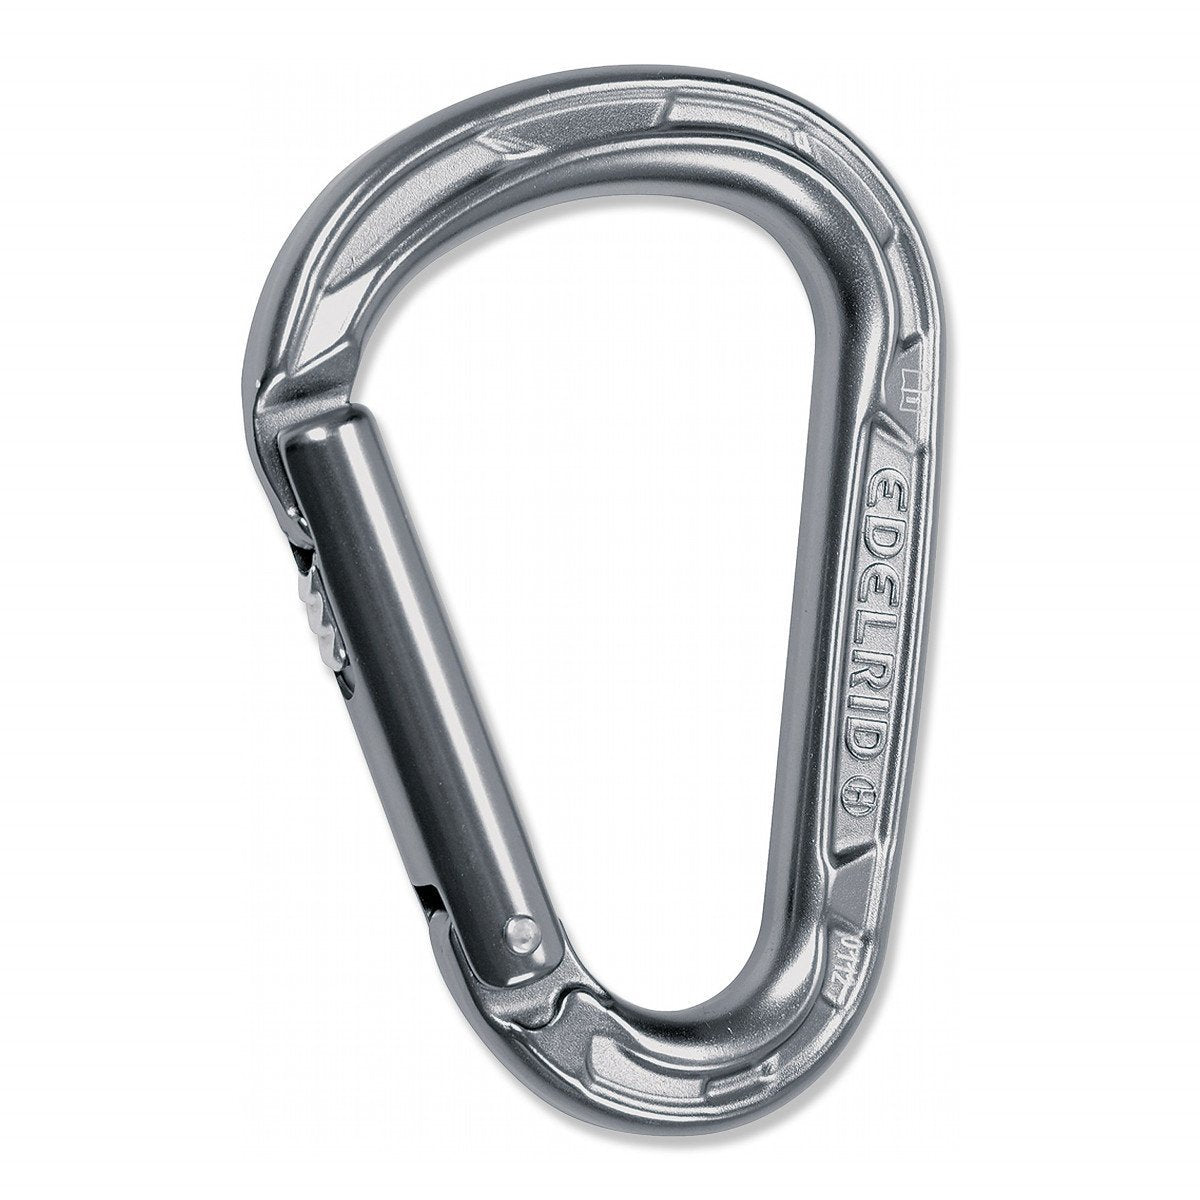 Edelrid HMS Strike Slider carabiner, in silver colour